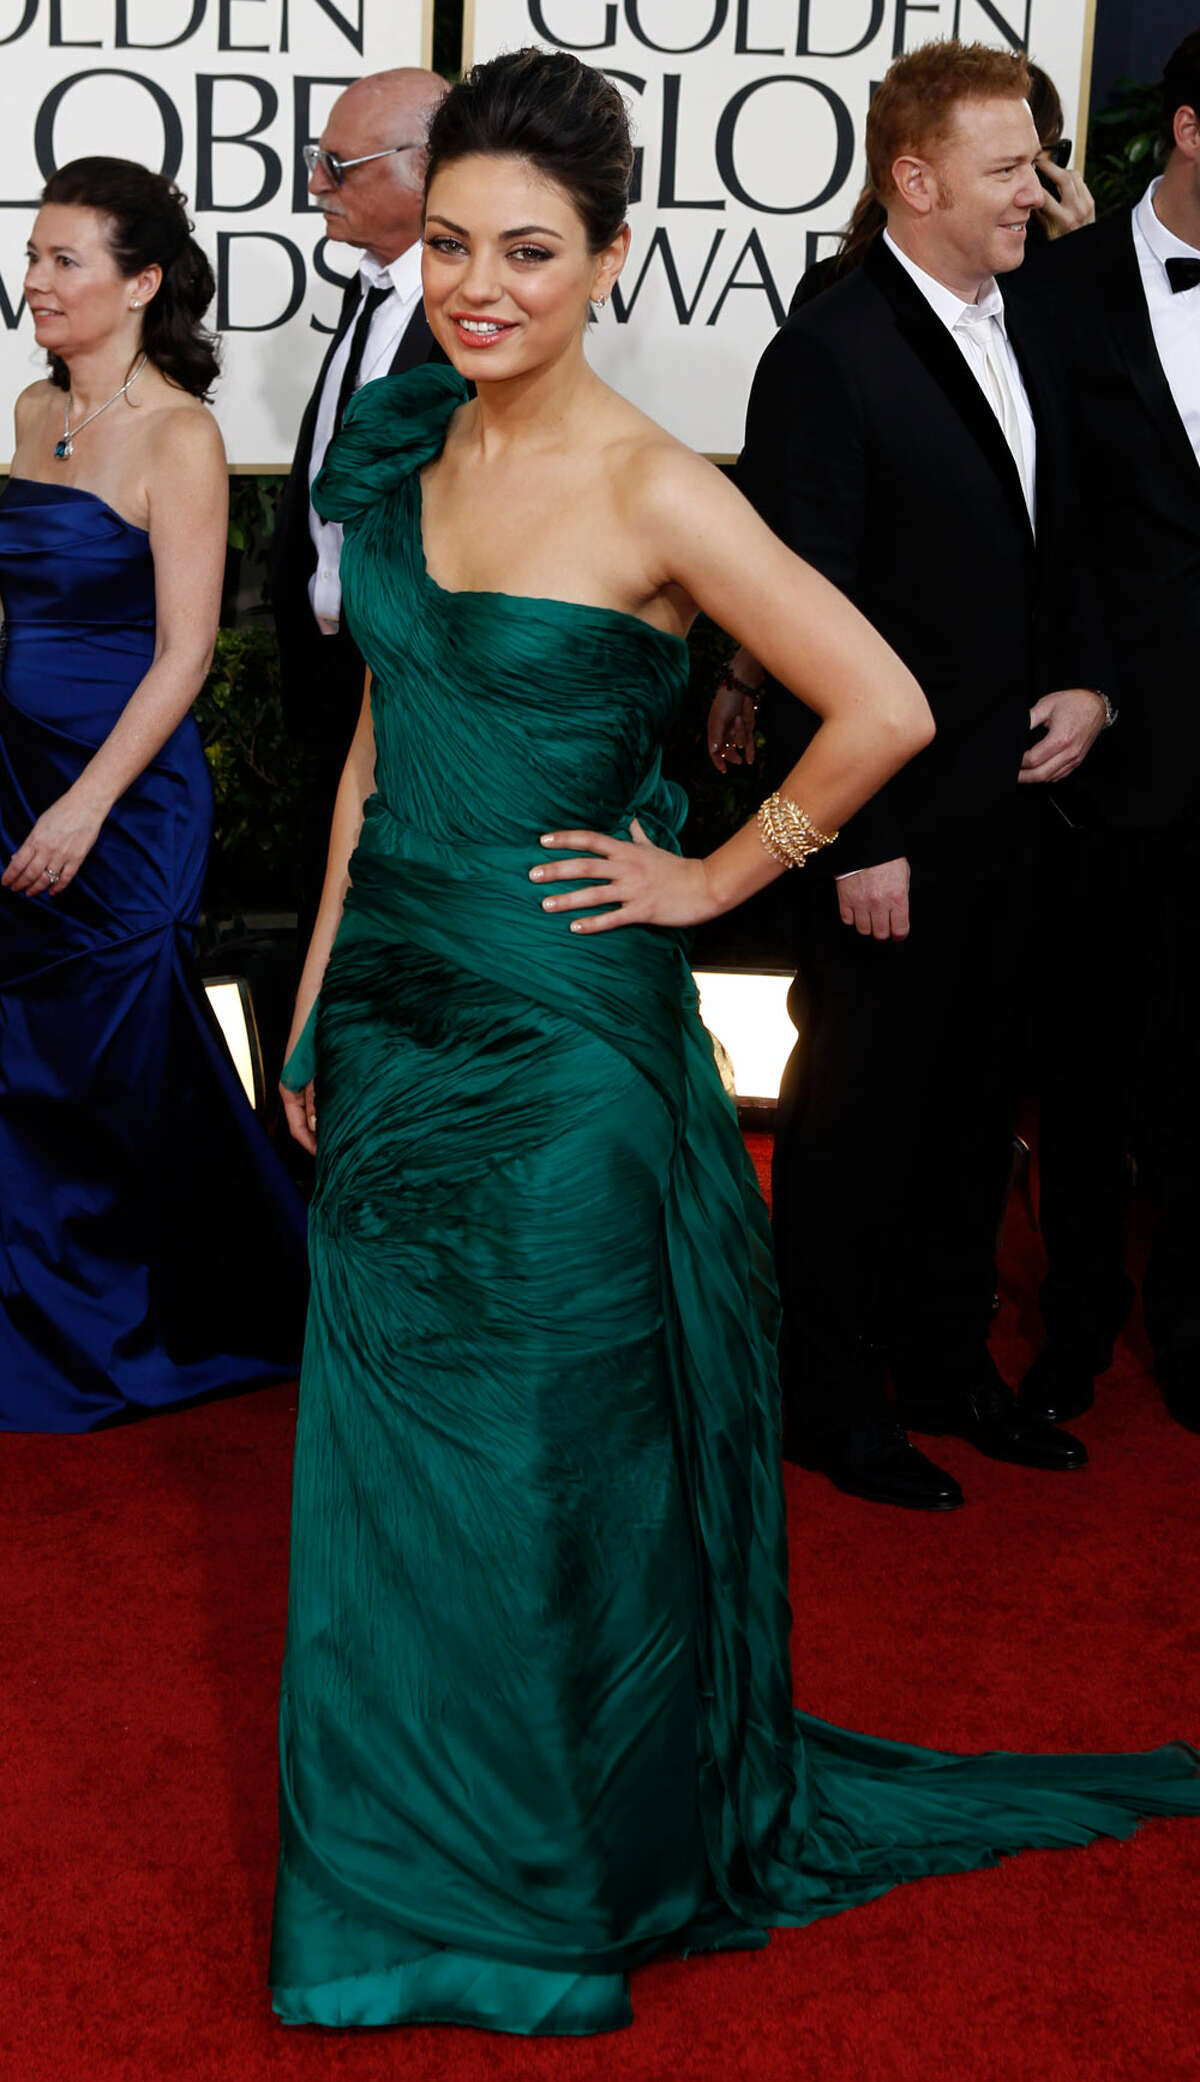 GOING 'HOME ALONE': Sans a Golden Globe - and recent ex-boyfriend Macaulay Culkin - Mila Kunis still managed to turn heads with her green-with-envy dynamite emerald green Vera Wang gown. It was heavily ruched. - Michael Quintanilla MATT SAYLES / ASSOCIATED PRESS